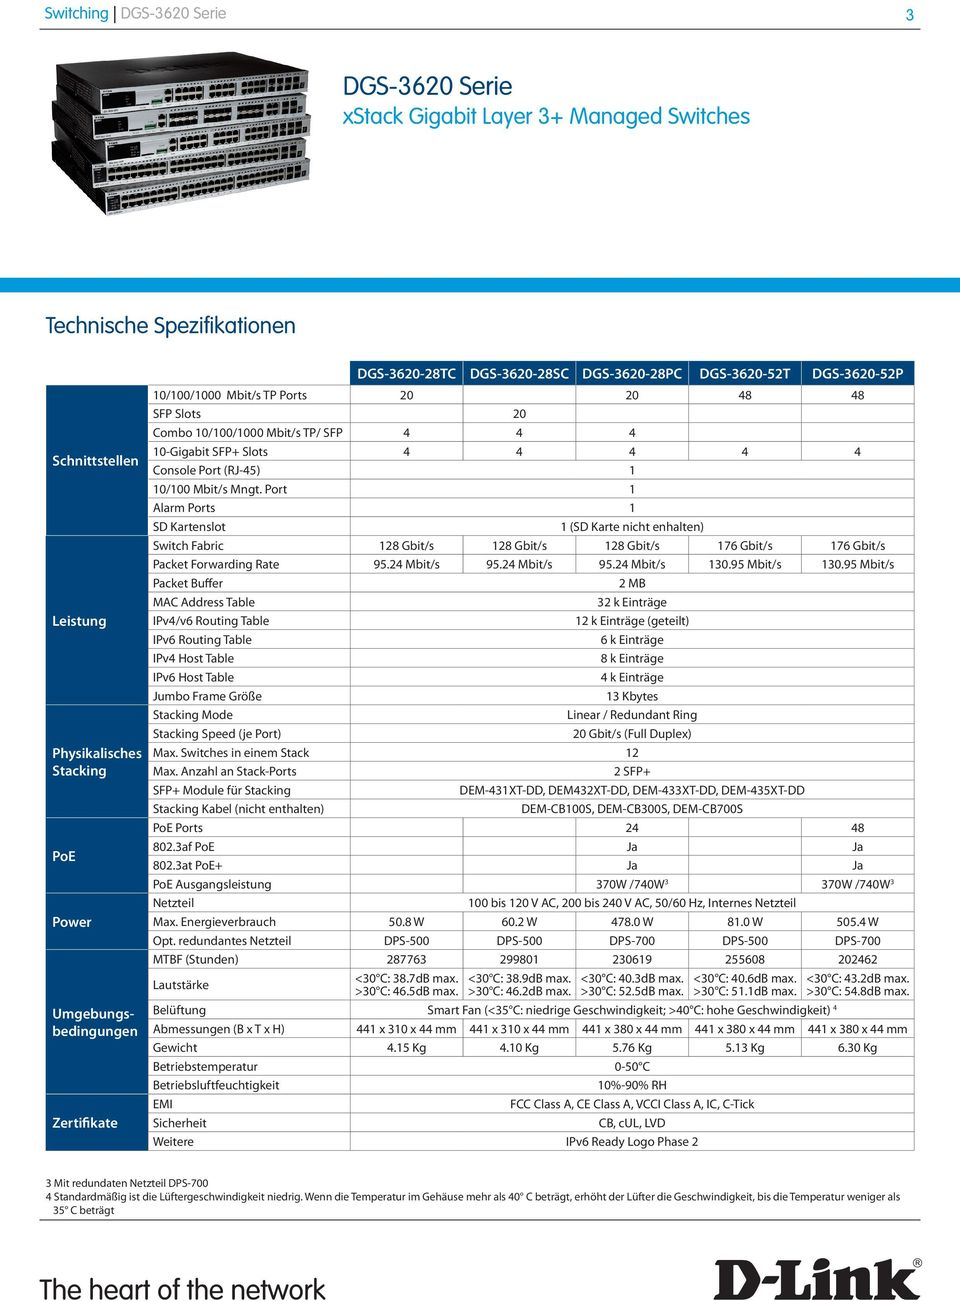 Port 1 Alarm Ports 1 SD Kartenslot 1 (SD Karte nicht enhalten) Switch Fabric 128 Gbit/s 128 Gbit/s 128 Gbit/s 17 Gbit/s 17 Gbit/s Packet Forwarding Rate 9.24 Mbit/s 9.24 Mbit/s 9.24 Mbit/s 130.